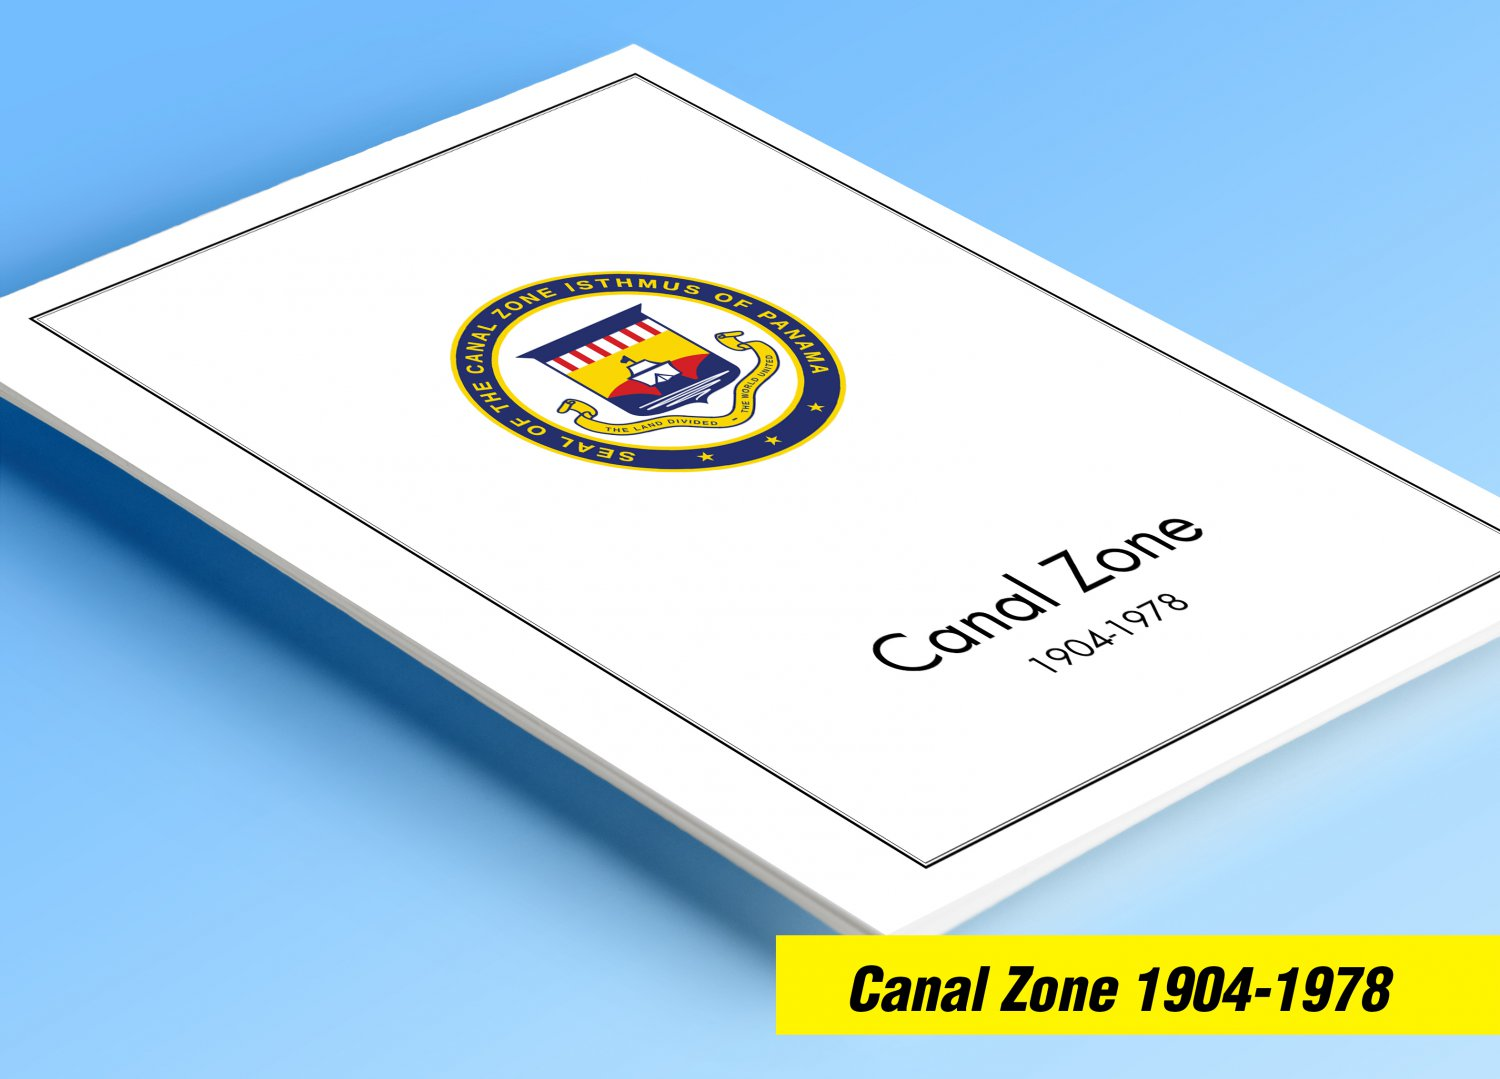 COLOR PRINTED CANAL ZONE 1904-1978 STAMP ALBUM PAGES (21 illustrated pages)